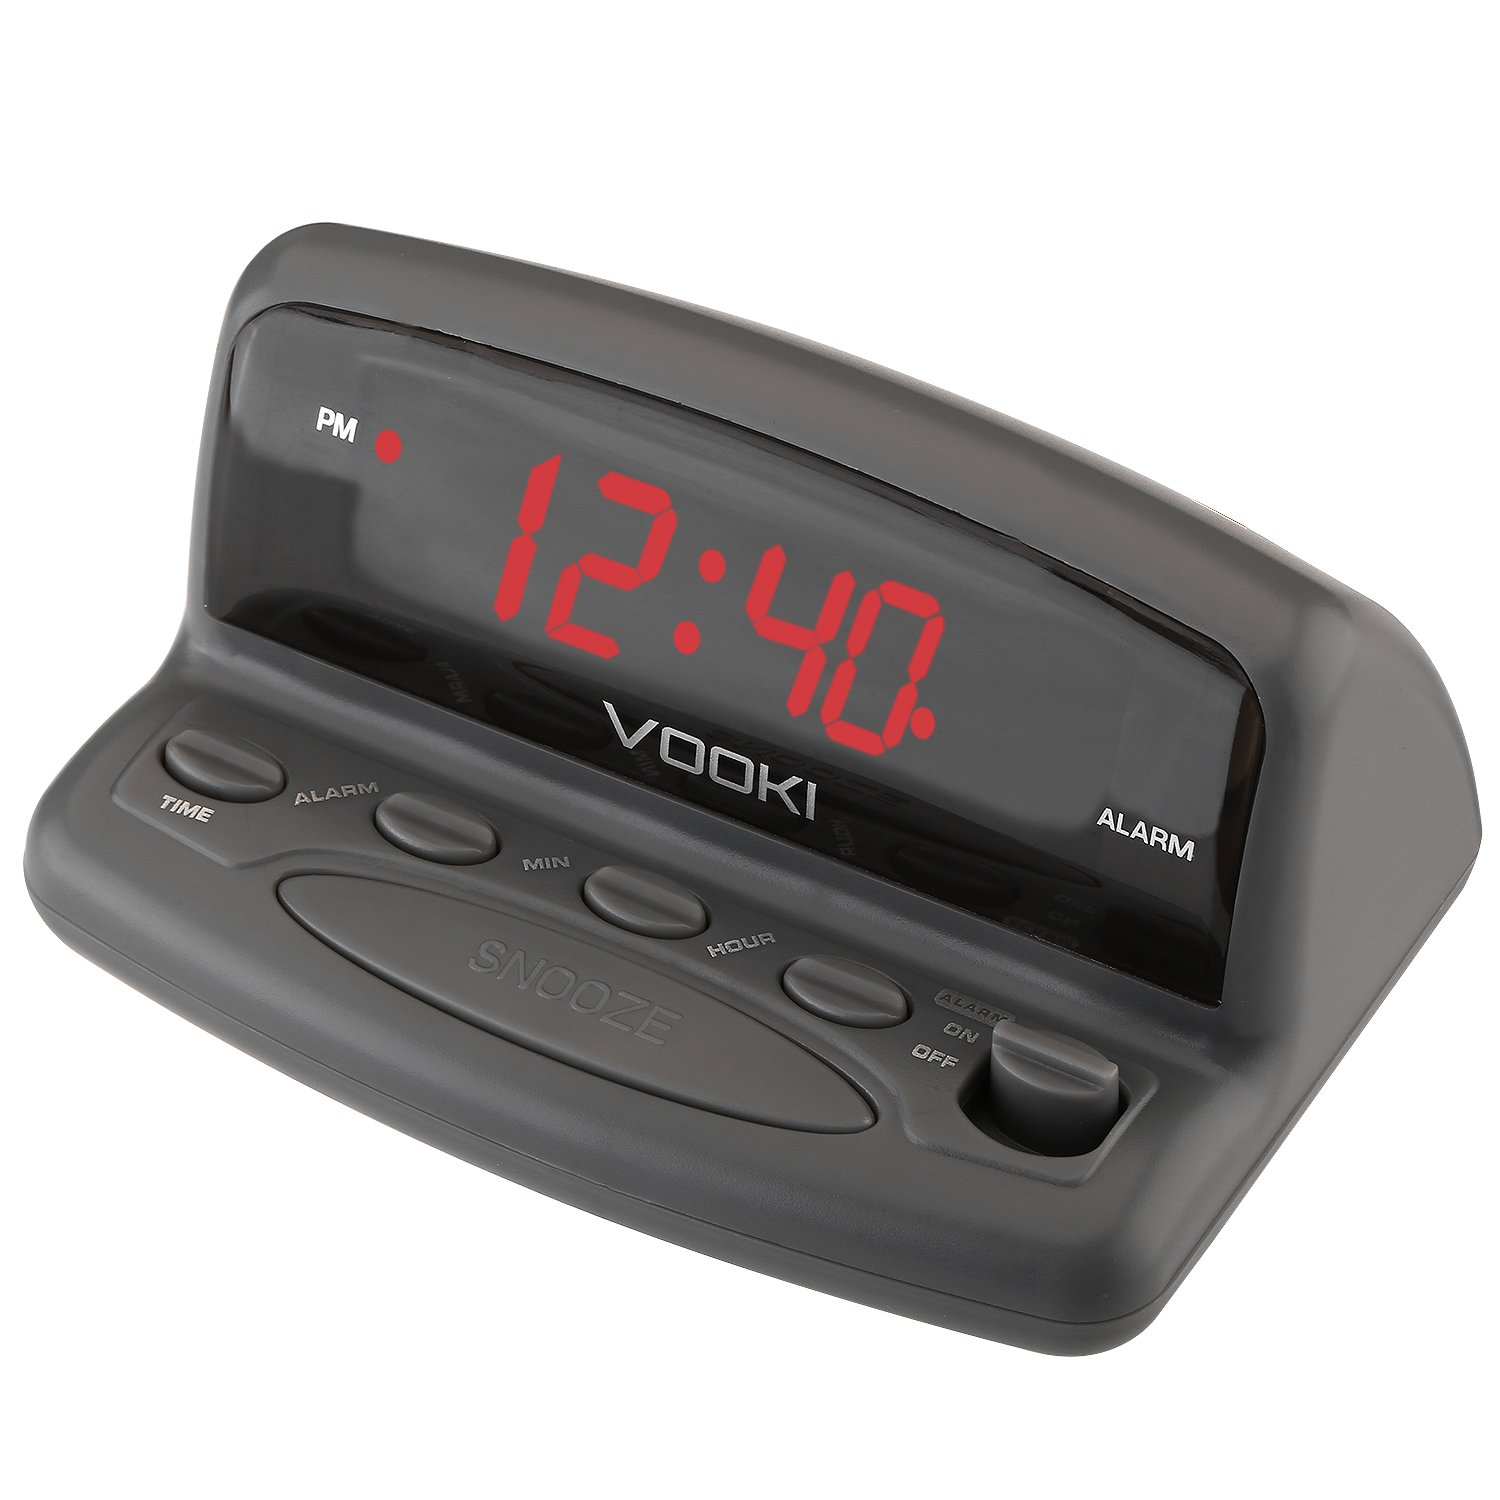 VOOKI LED Digital Alarm Clock - Outlet Powered, No Frills Simple Operation, Alarm, Snooze, 0.6'' Clear Red Digit Display With 9V Battery Backup, Gray